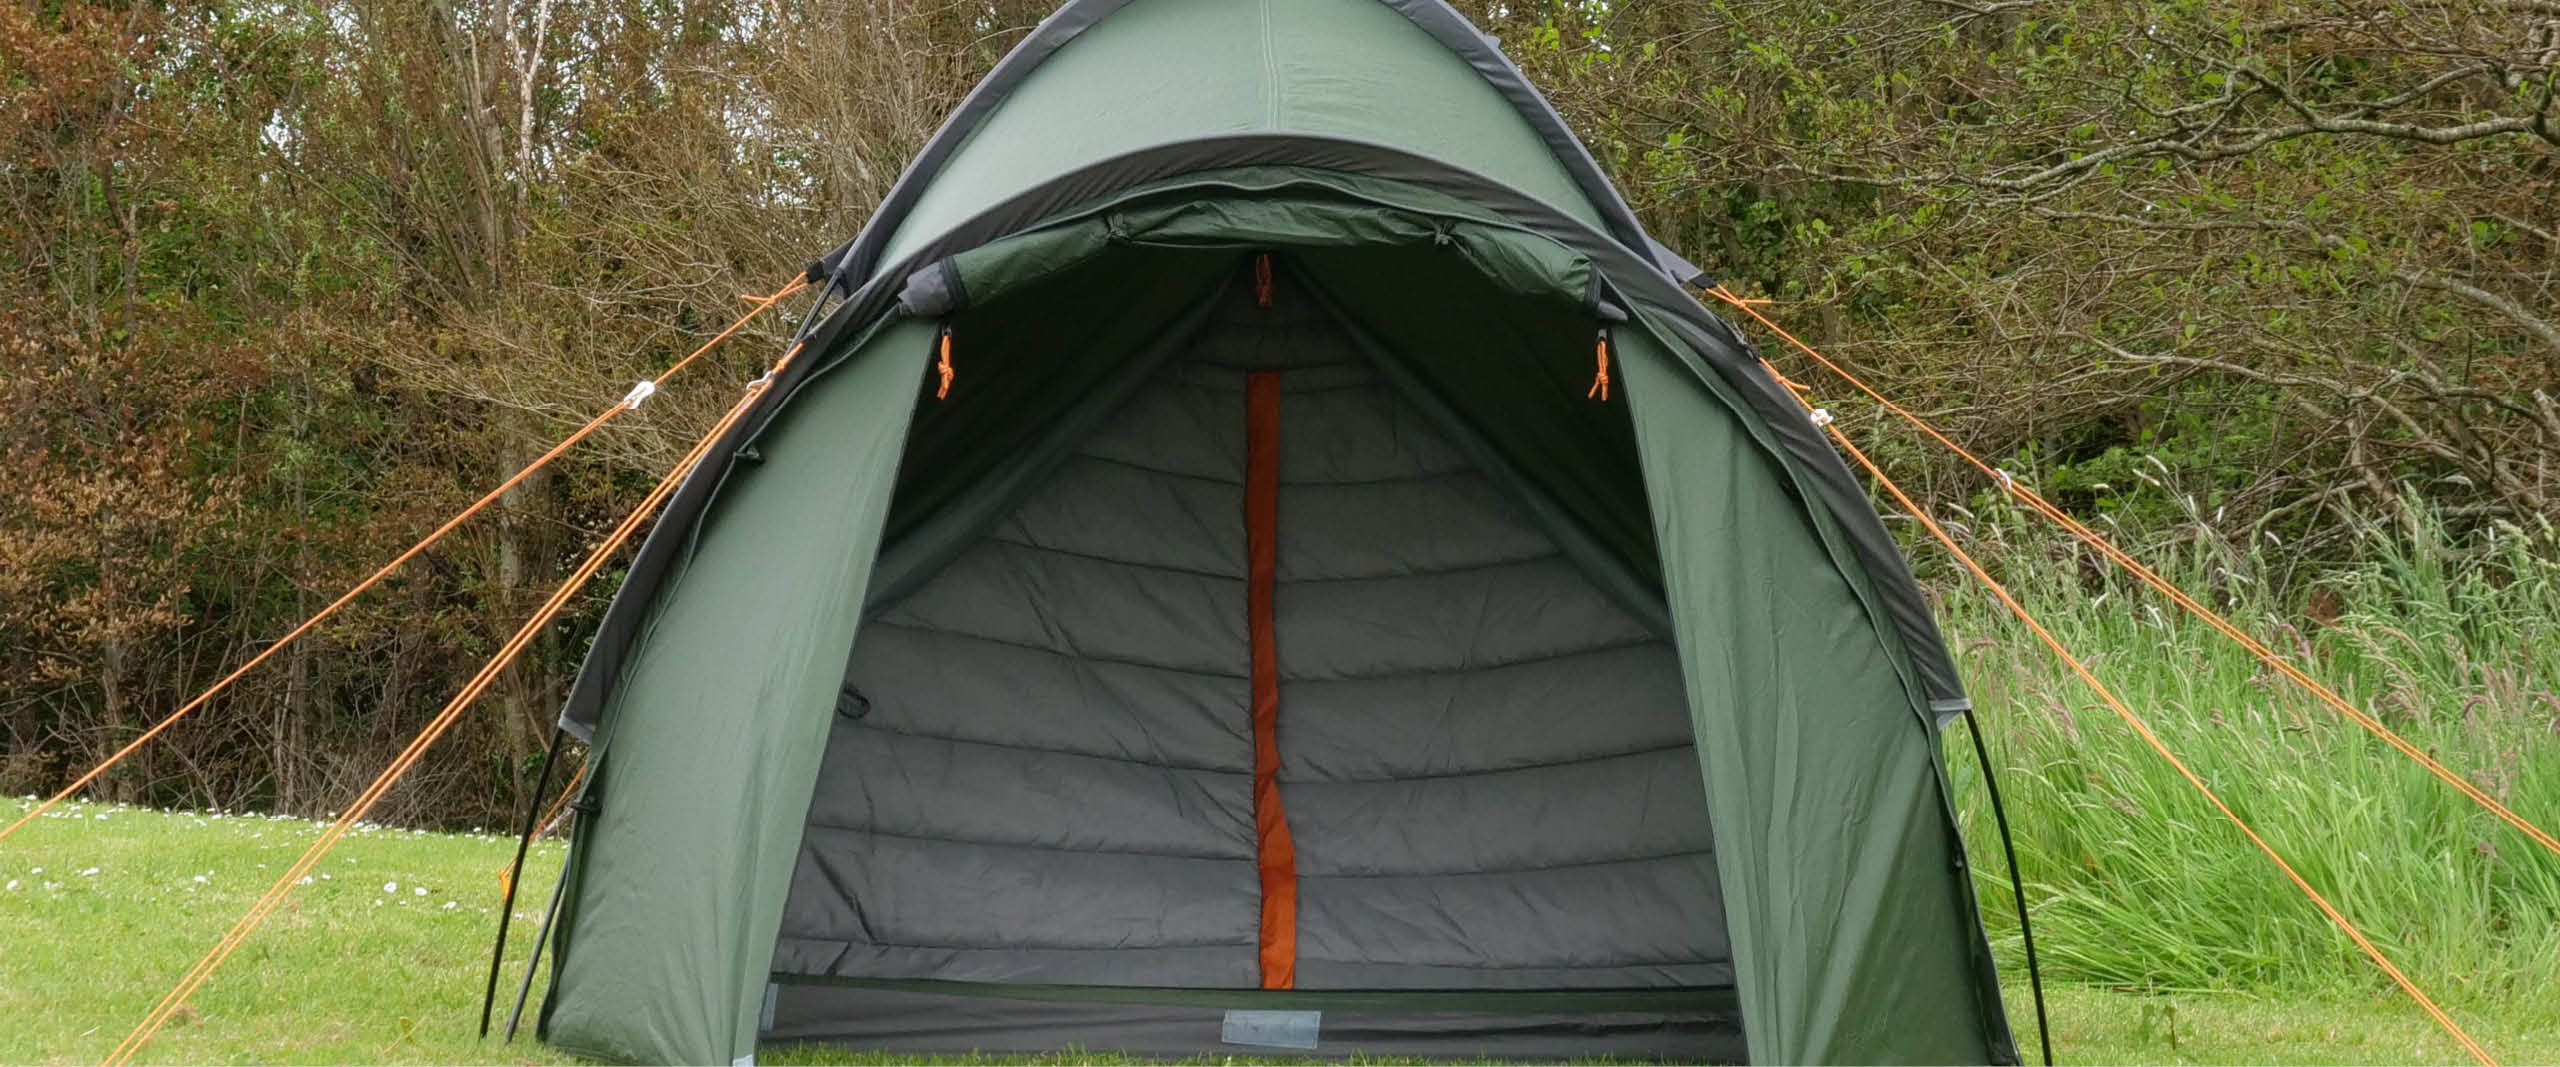 2 Person Modular System for camping tents